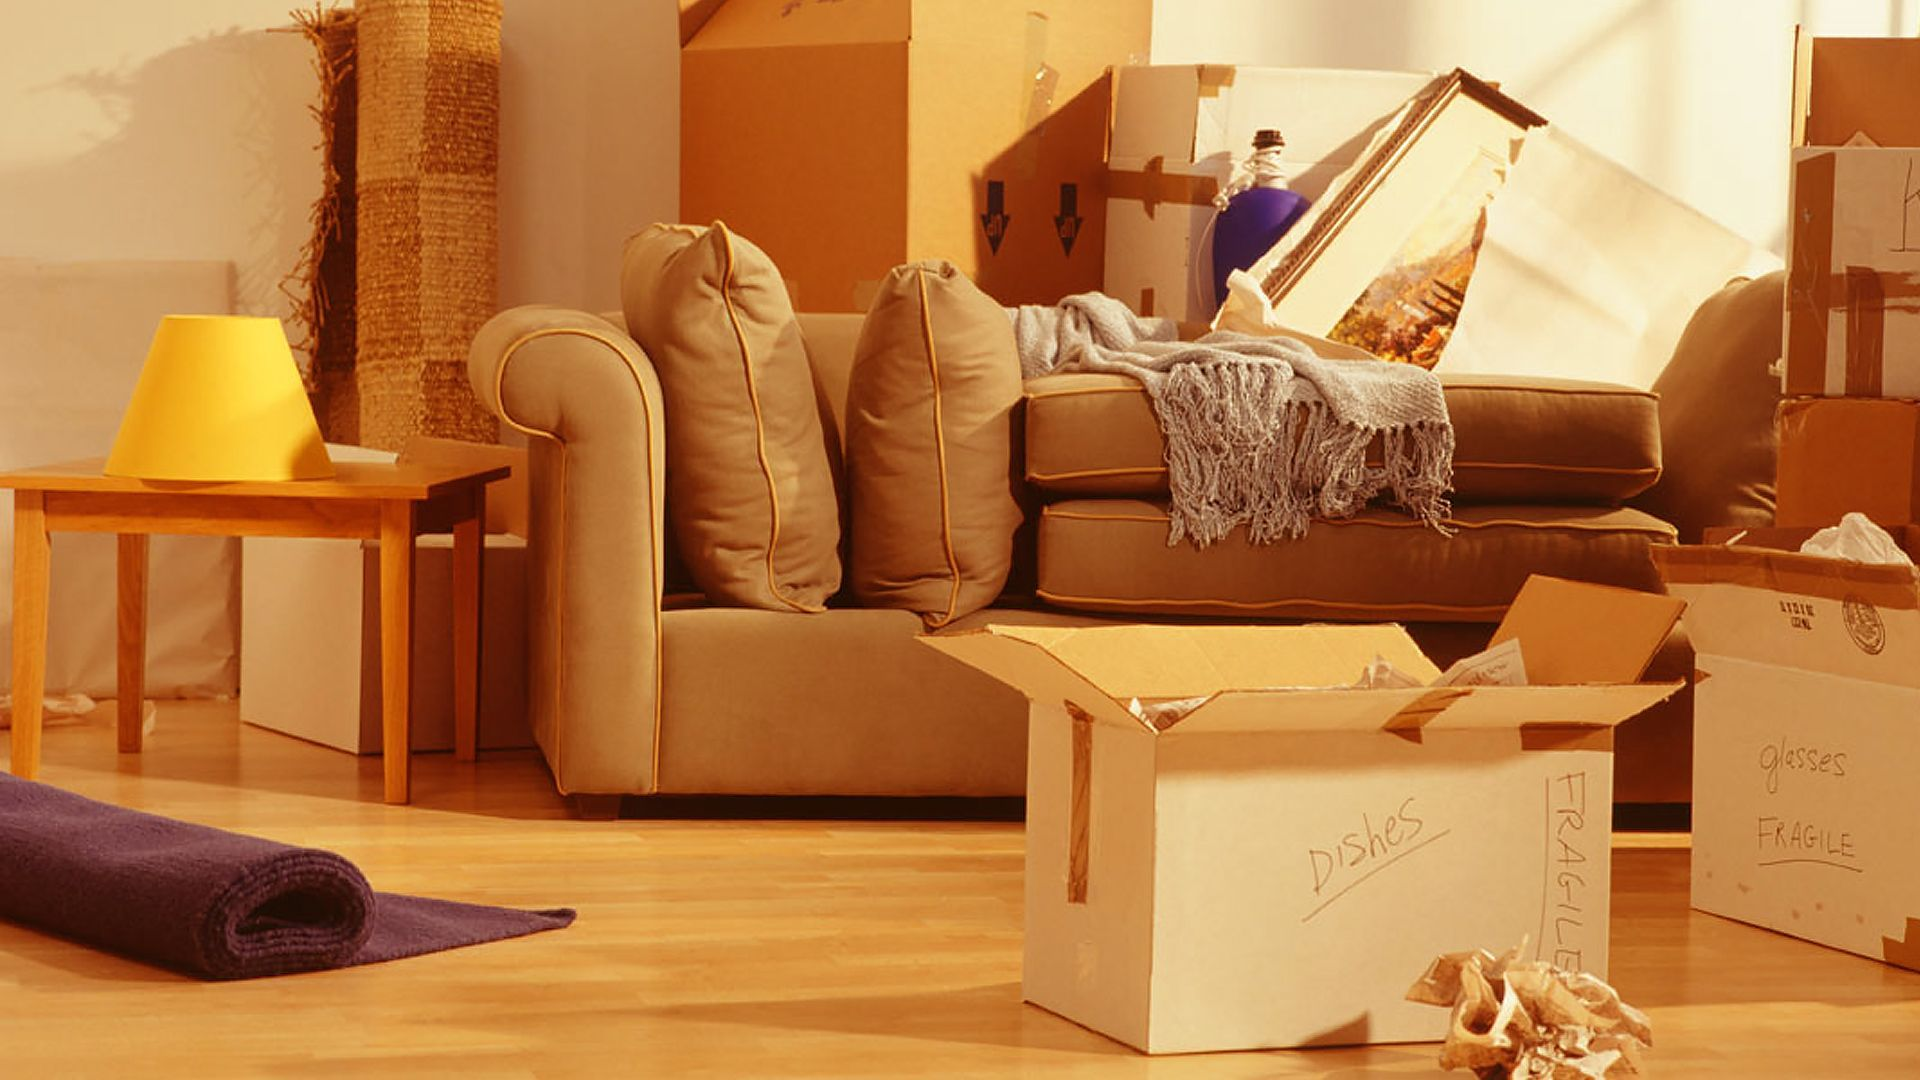 Moving to Brier? Hire a Professional Residential Mover! | Packers and movers,  Moving and storage, Best movers